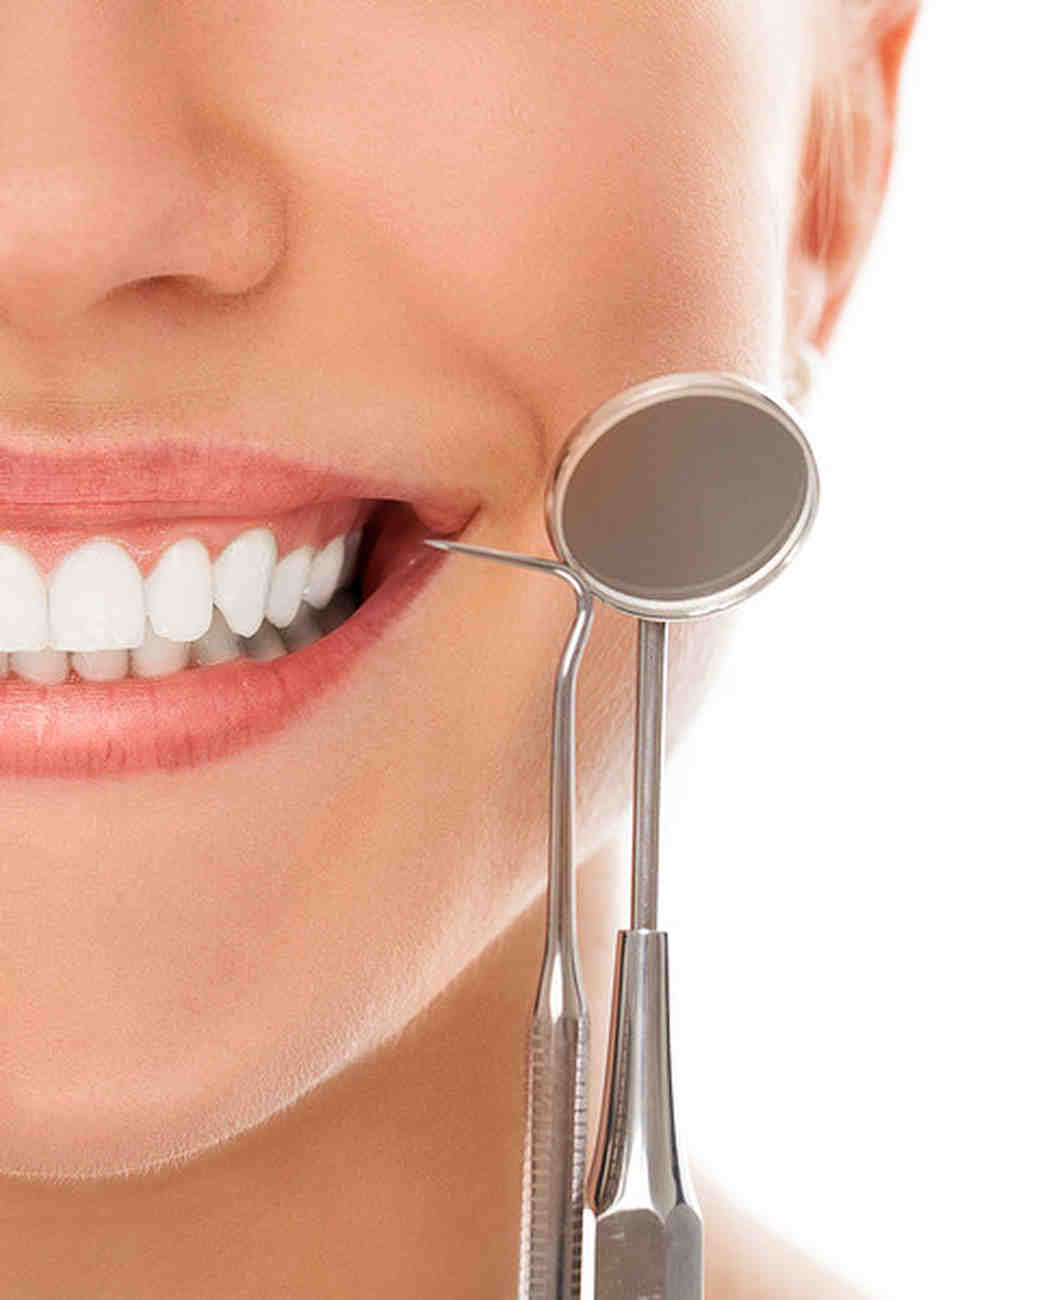 woman smiling at dentist appointment teeth